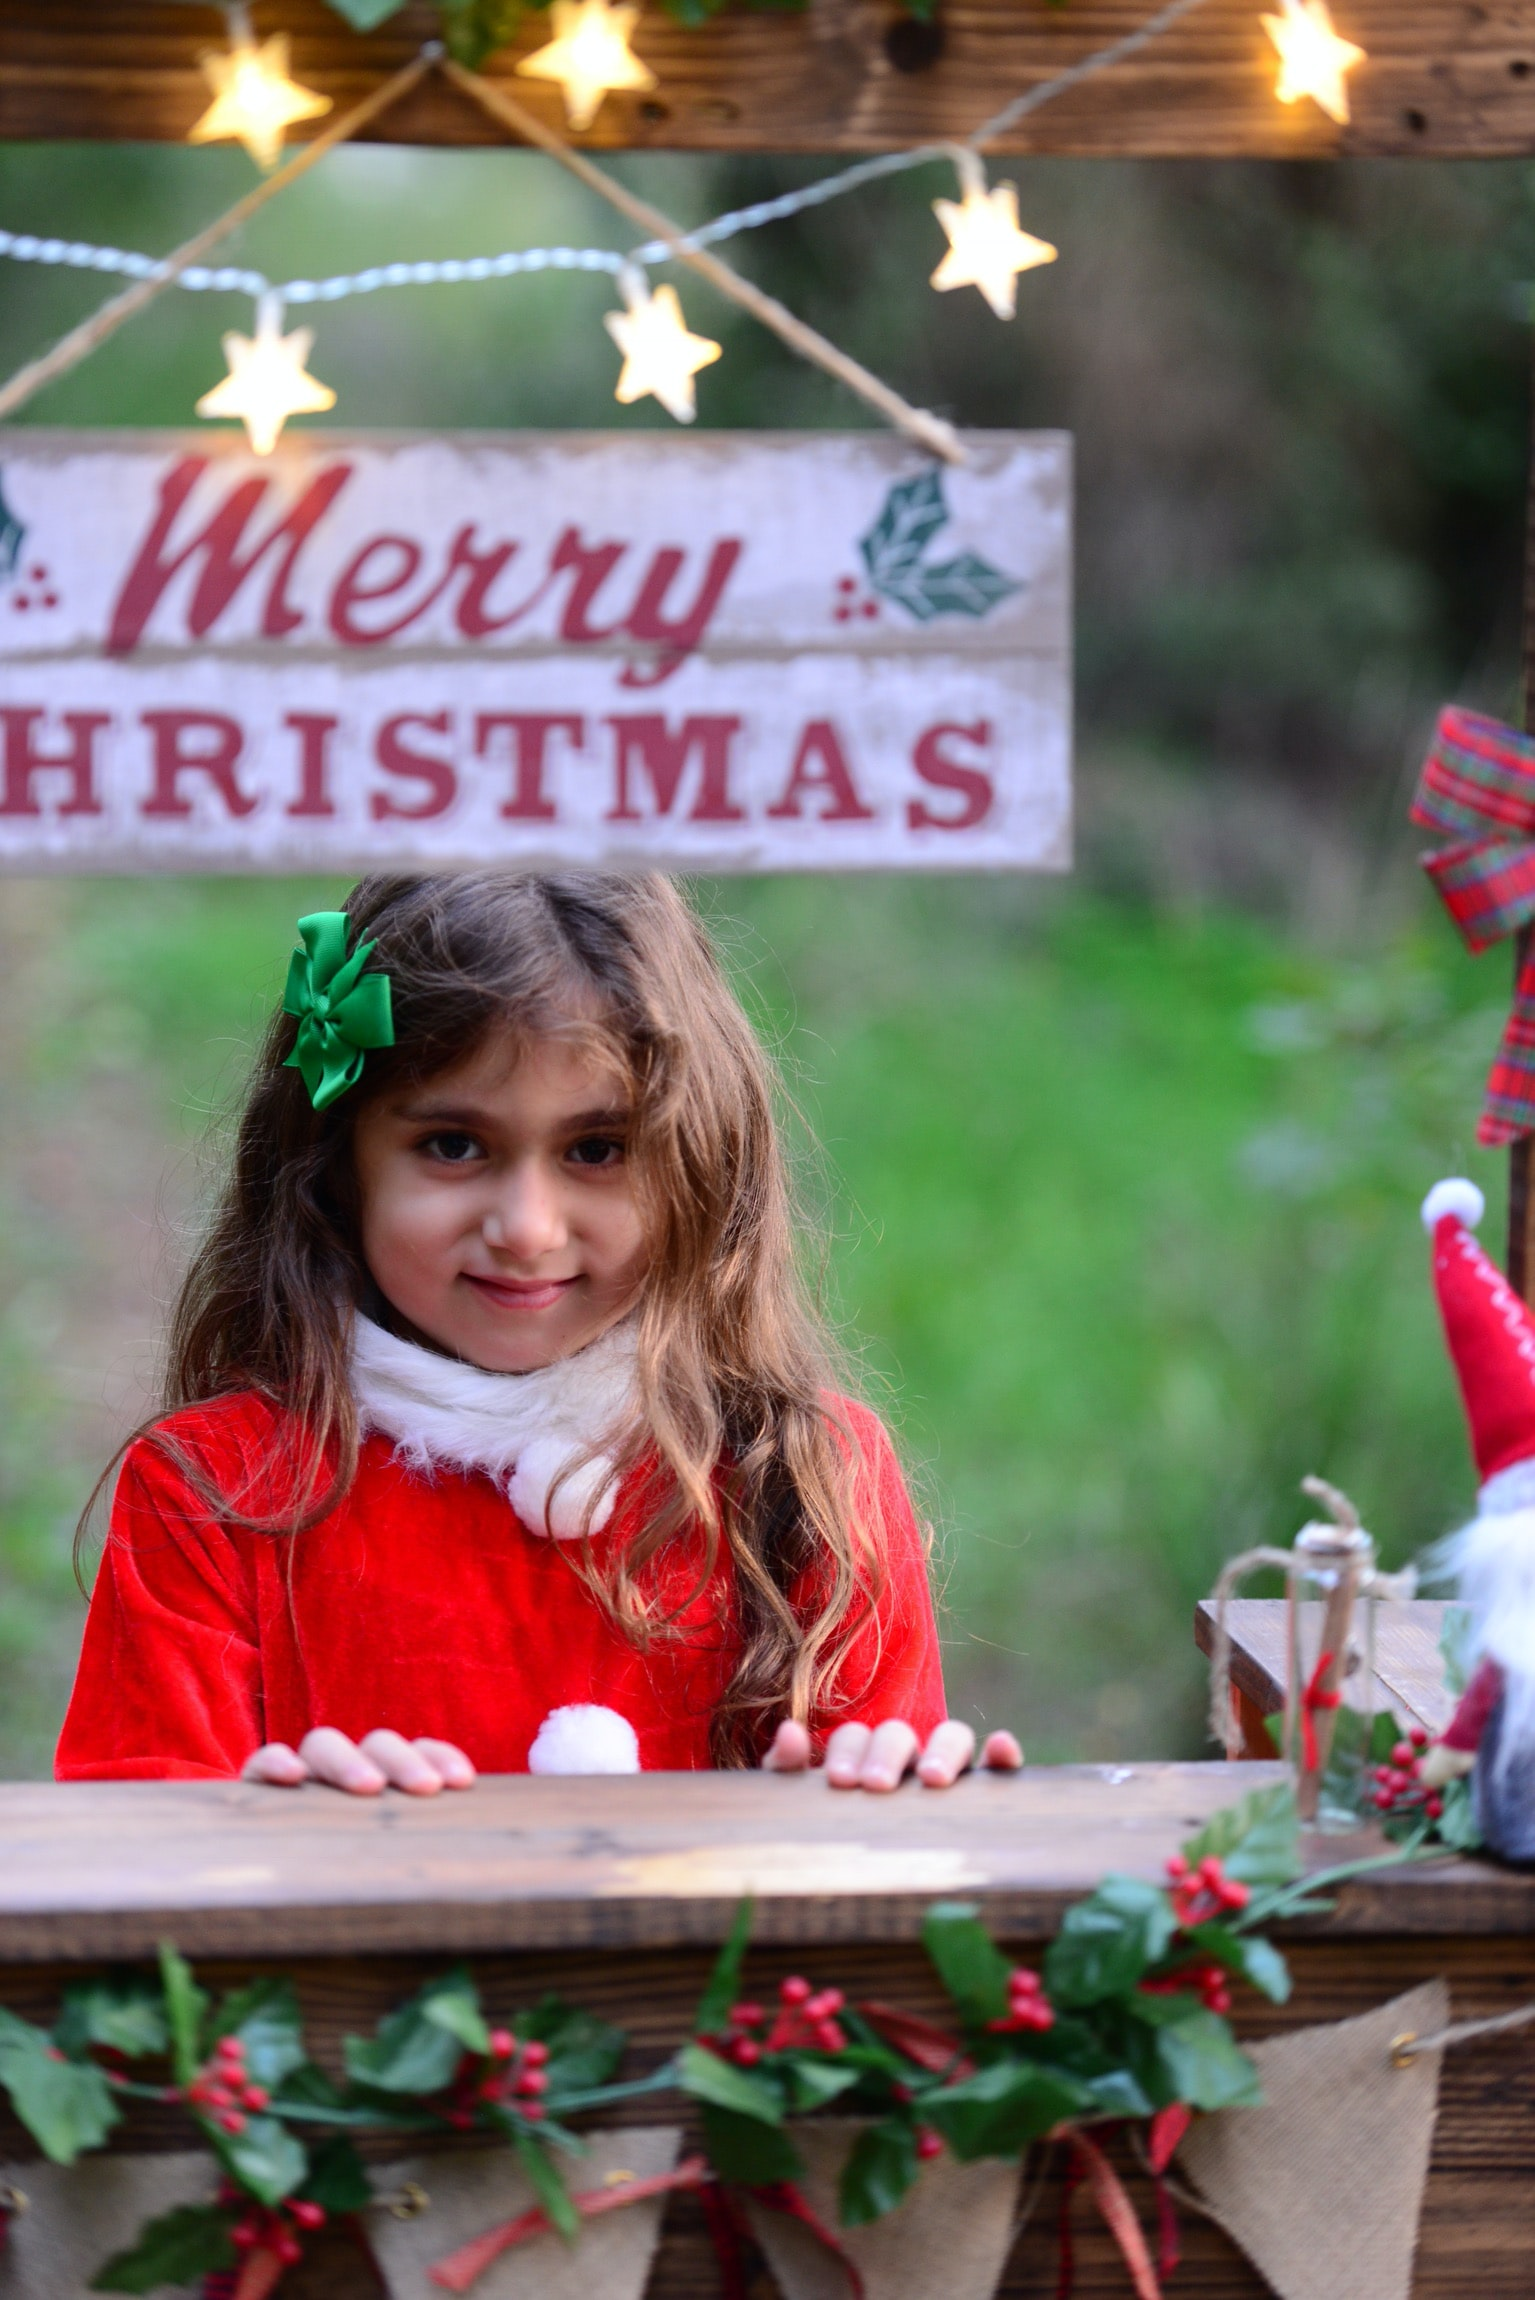 girl standing near merry christmas signage during daytime